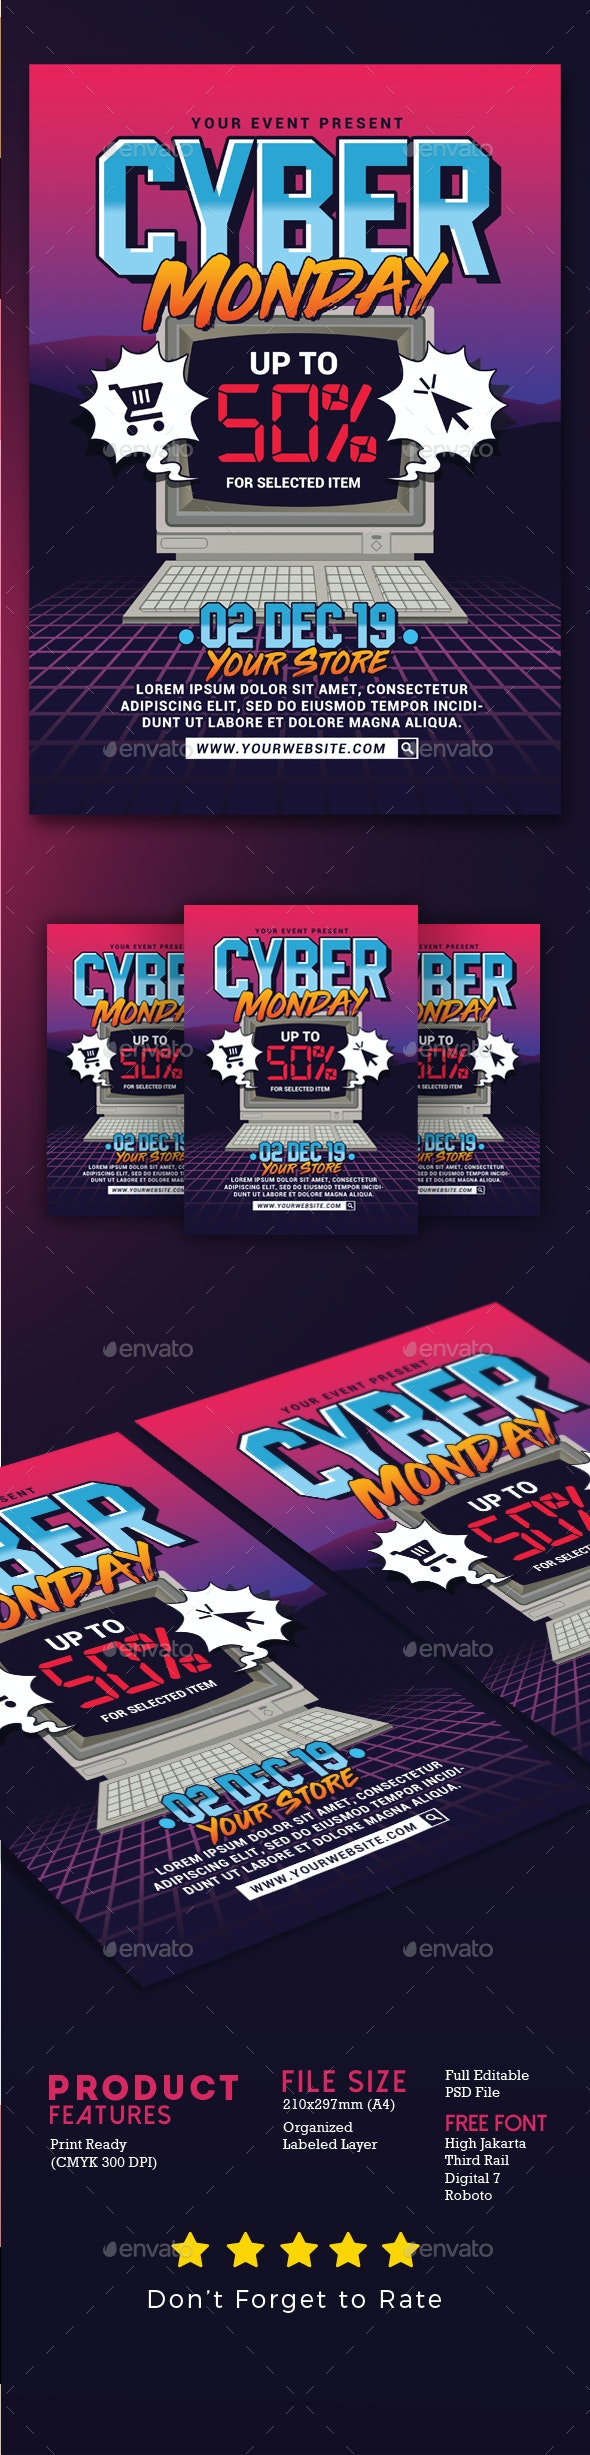 Cyber Monday Event Flyer